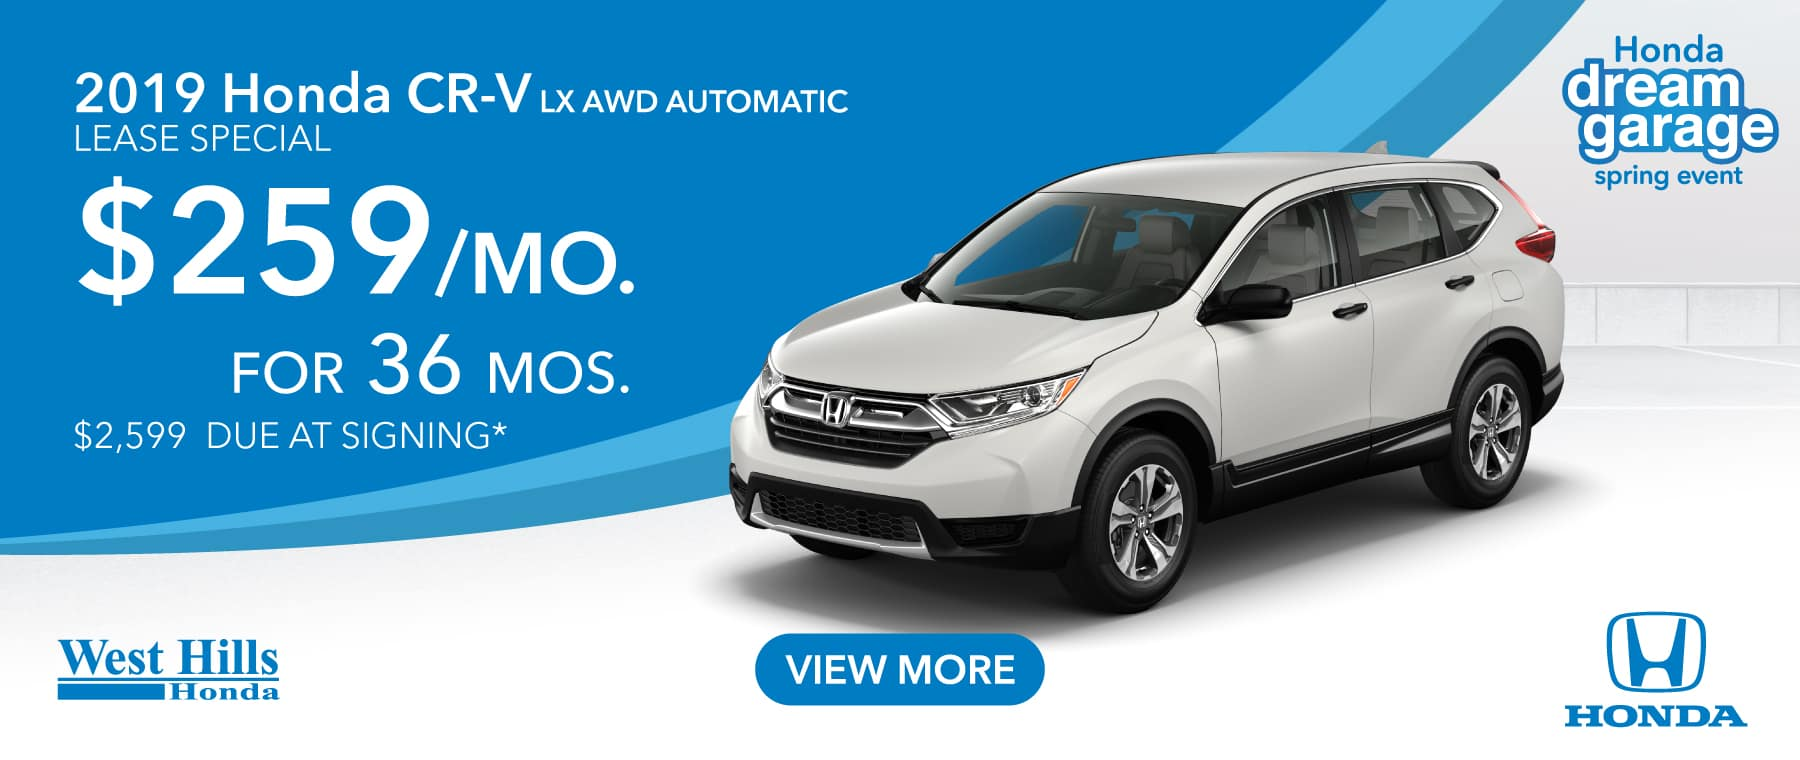 2019 Honda CR-V LX AWD Automatic (Featured Vehicle) $259/mo. for 36 mos. $2,599 due at signing*    *Valid on 2019 Honda CR-V LX AWD Automatic. $259 per mo. for 36 months. Lease with $2,599 due at signing; includes a $595 acquisition fee. Valid on VIN: 2HKRW6H31KH200740, 2HKRW6H38KH200220, 2HKRW6H30KH200356. MSRP is $26,745. No Security deposit required. Subject to credit approval. 36 monthly payments required. Not all lessees will qualify for lowest payment through participating lender. Residency restrictions apply. Lessee responsible for maintenance, excessive wear/tear and mileage over 12,000 miles per year at $0.15/mile. Option to purchase at lease end. Excludes state and local taxes, tags, registration and title, insurance and dealer charges. A negotiable dealer documentary service fee of up to $150 may be added to the sale price or capitalized cost. Offer expires 3/31/2019.